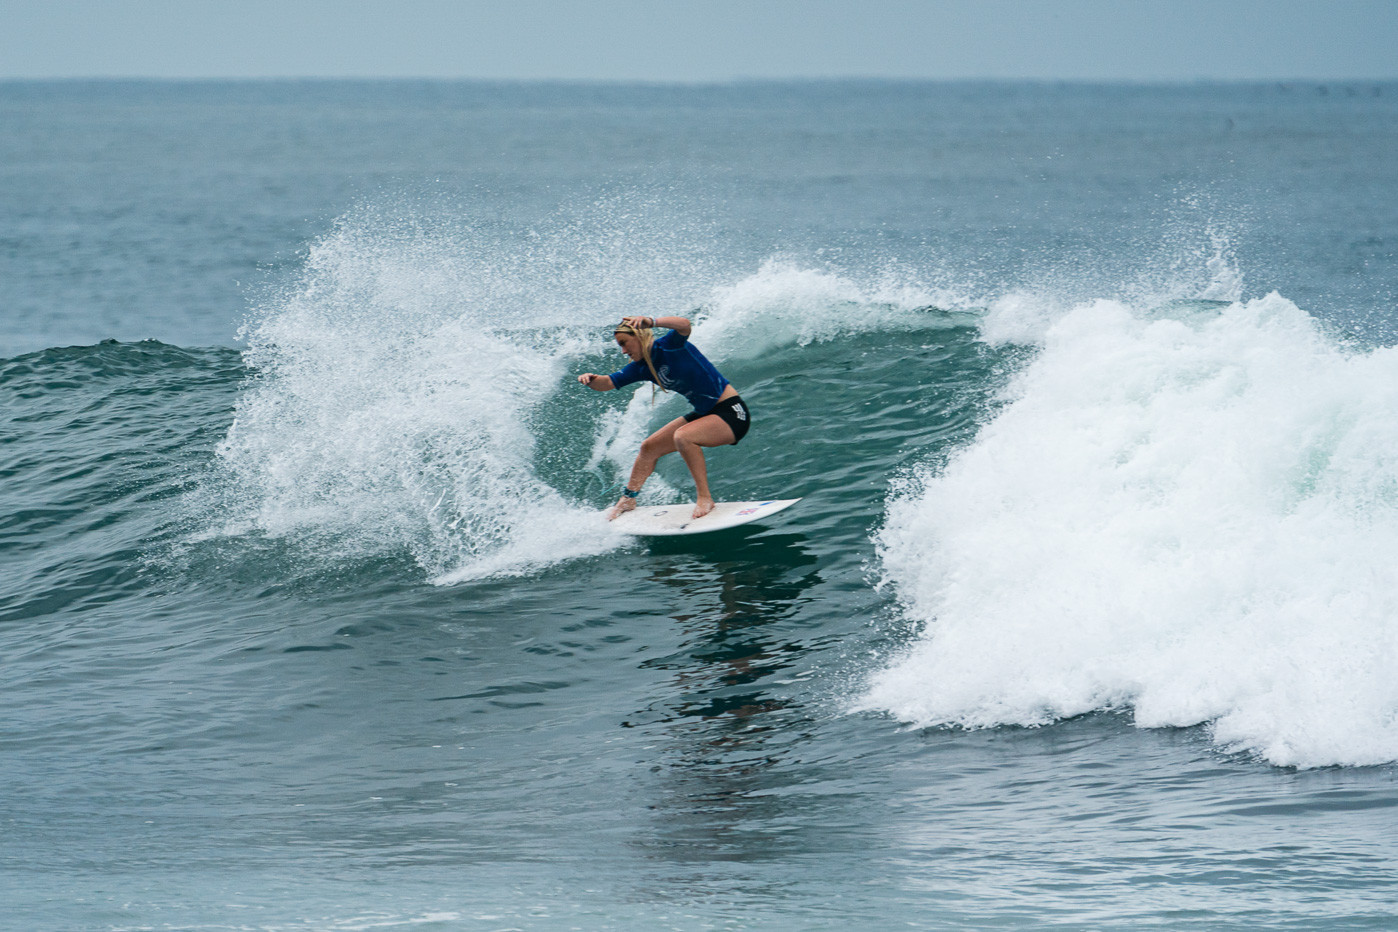 Britain's Ellie Turner was among the women's heat winners on the fifth day ©ISA/Sean Evans